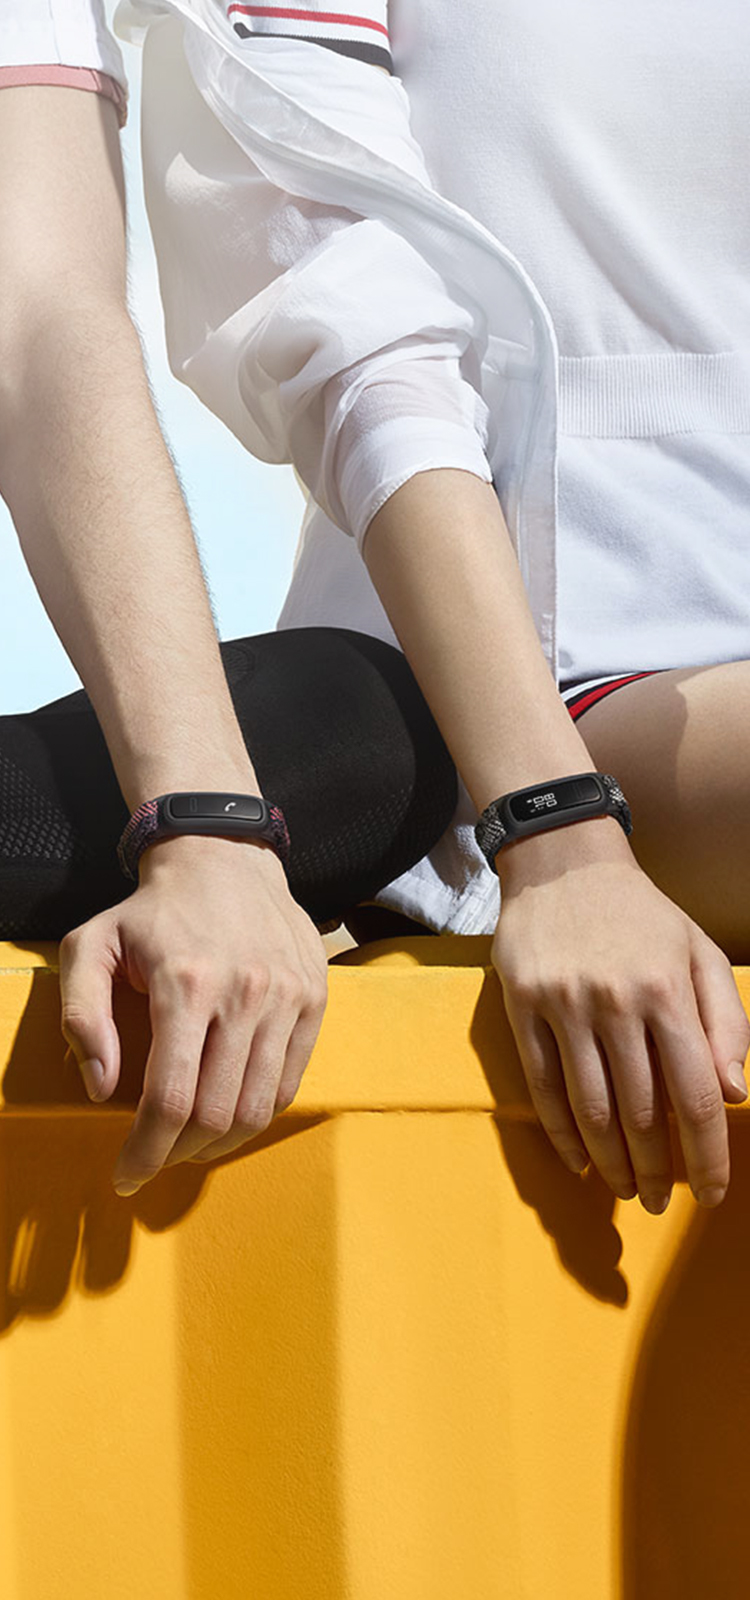 HUAWEI Band 4e Simplify Your Daily Life